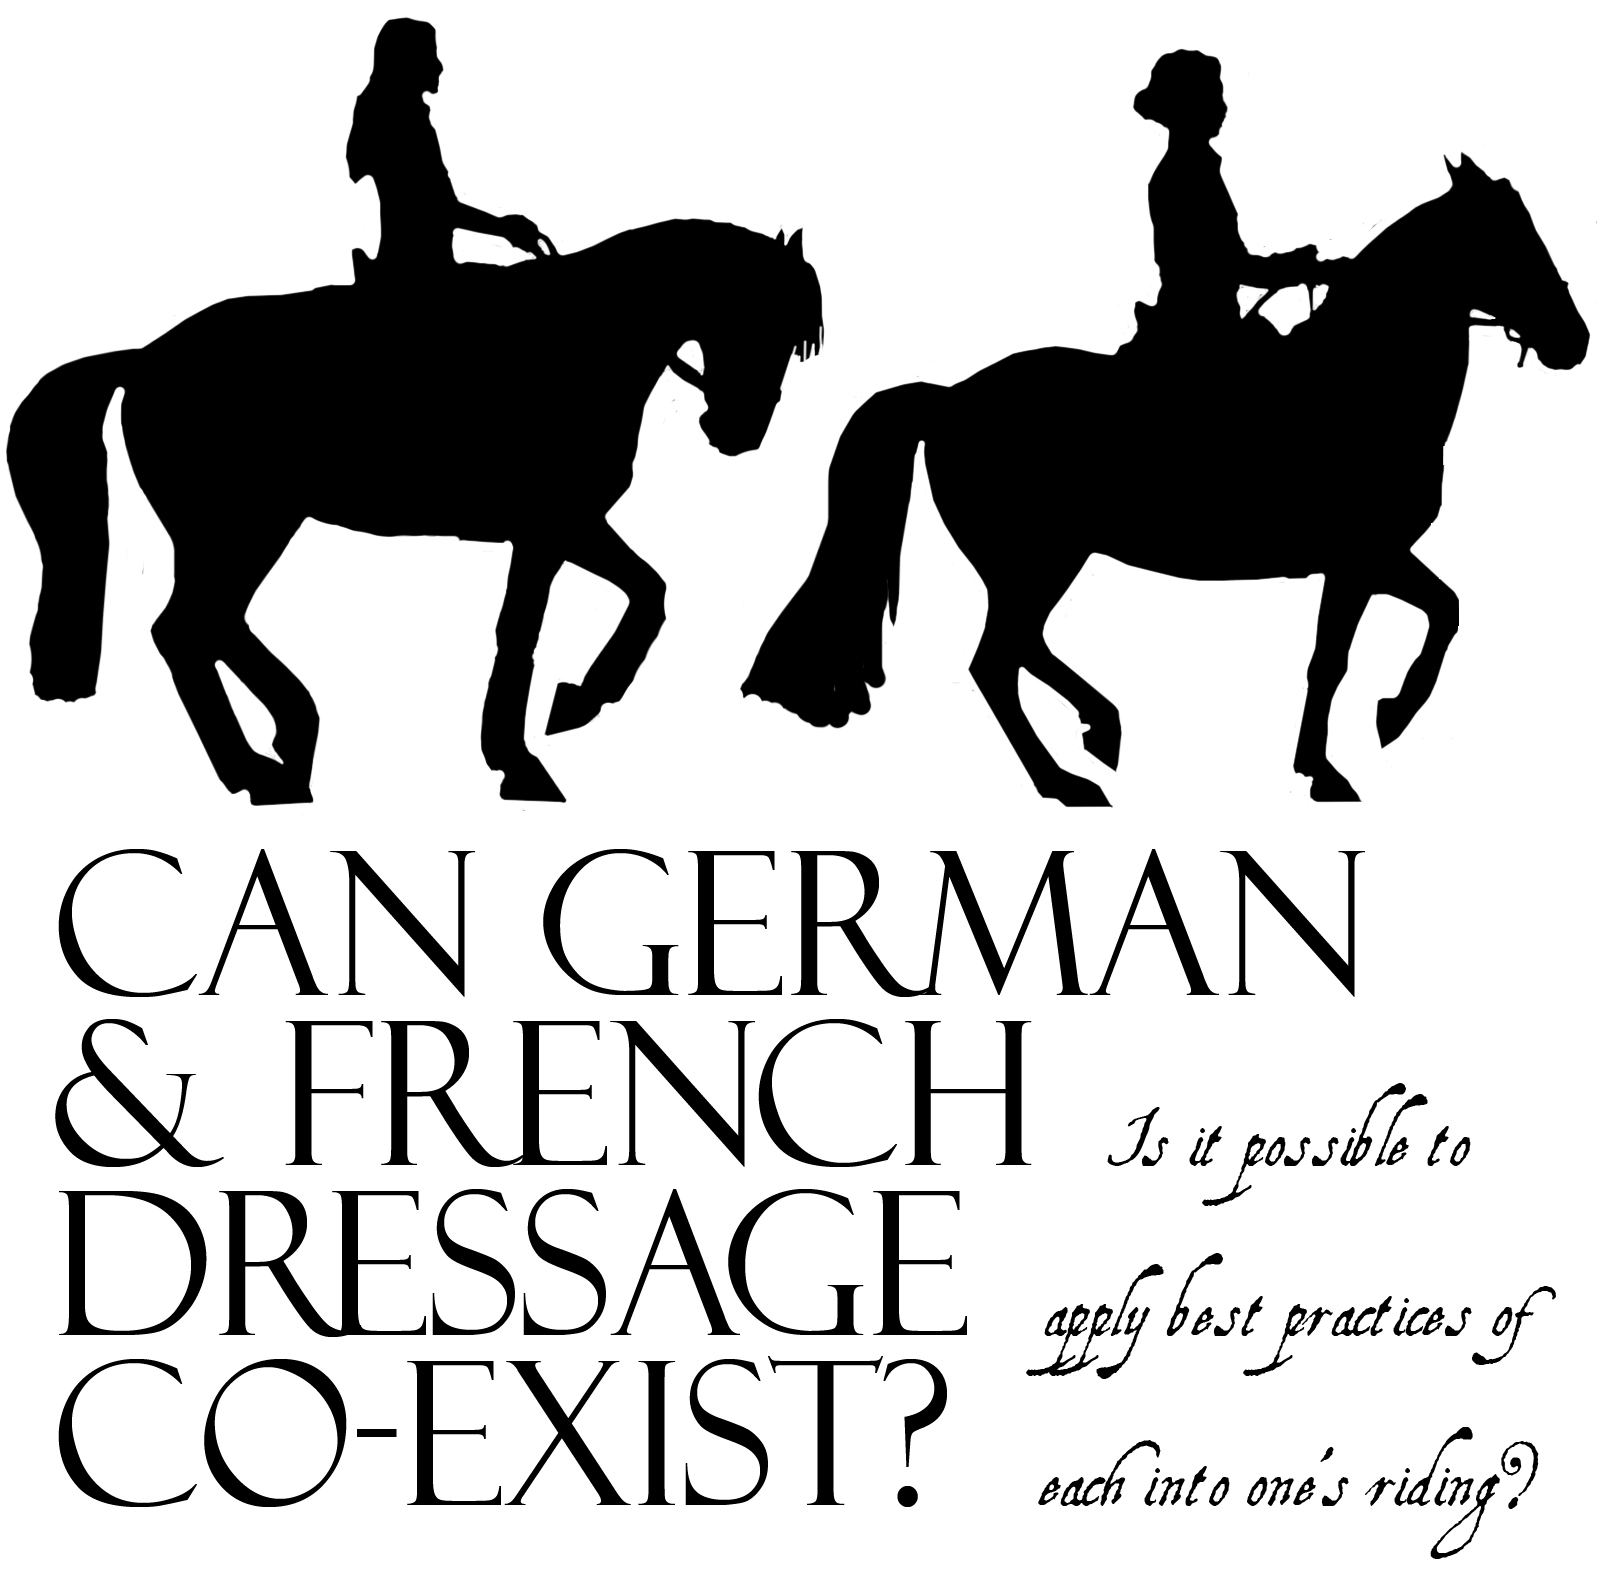 Can German and French dressage co-exist?